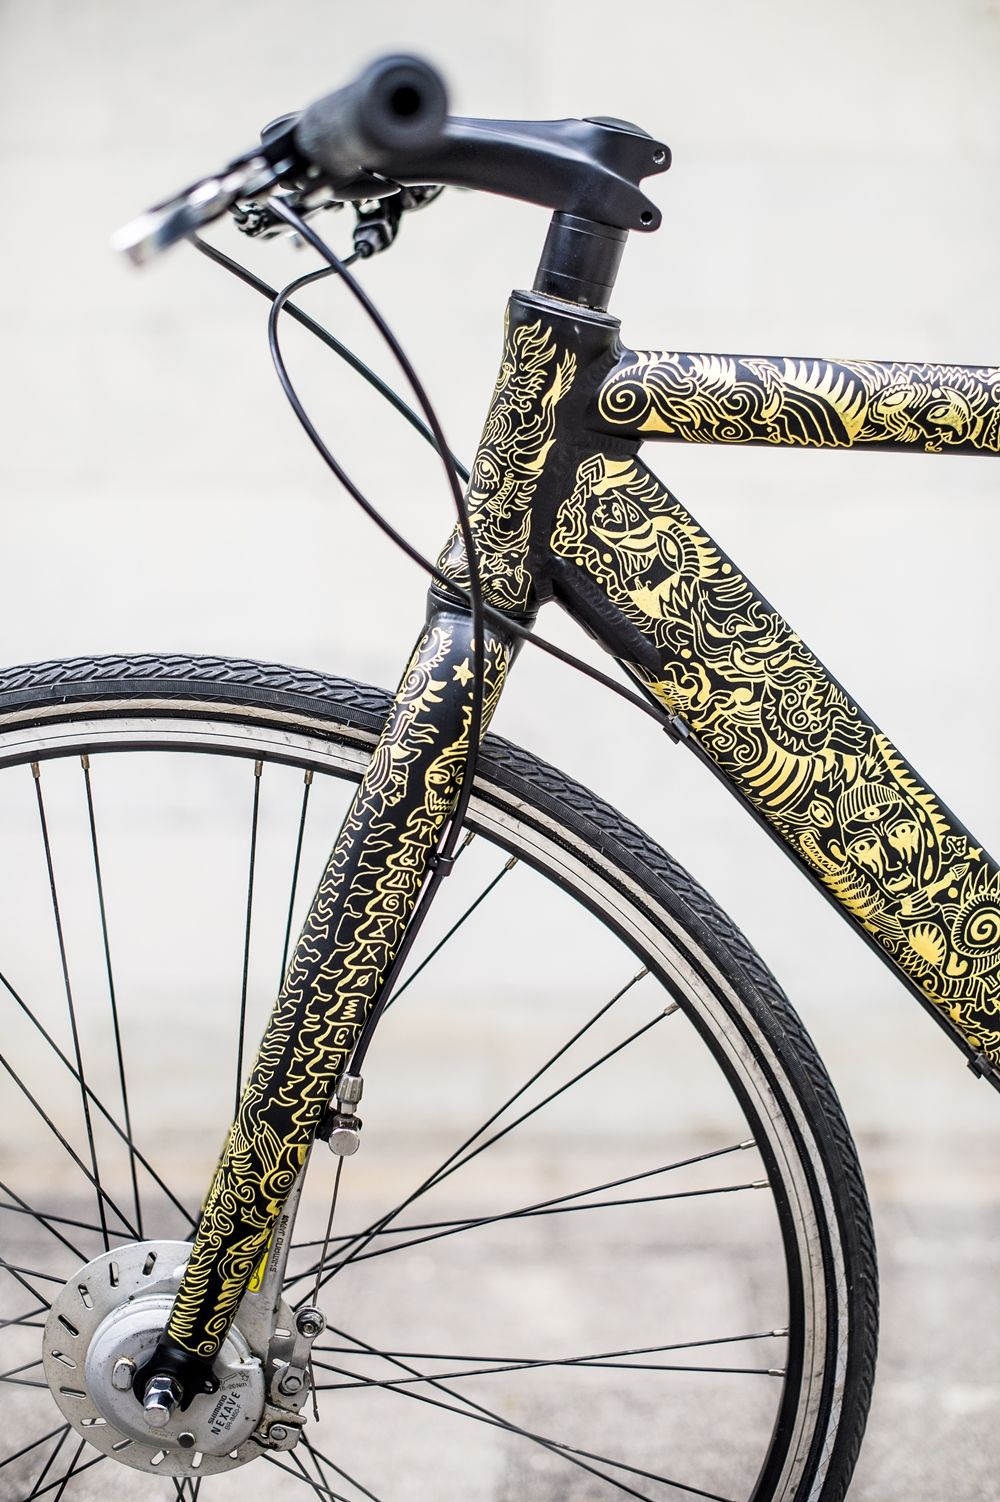 HandDrawn Handmade Spoon Customs At B1866 Fixie bikes and